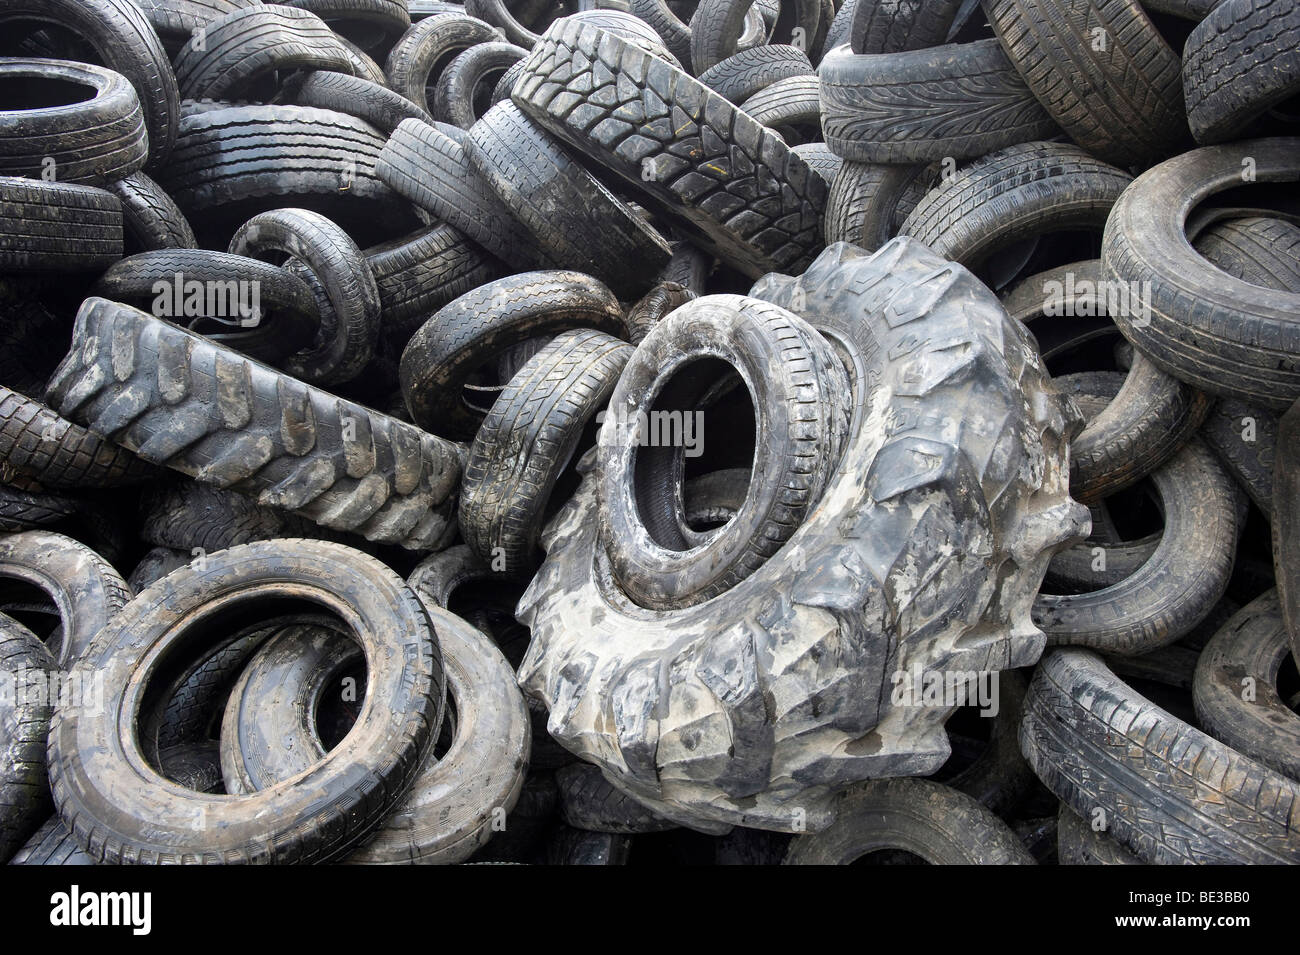 Old tires being shredded, substitute fuel for cement production, Rohrendorf cement works, Bavaria, Germany - Stock Image